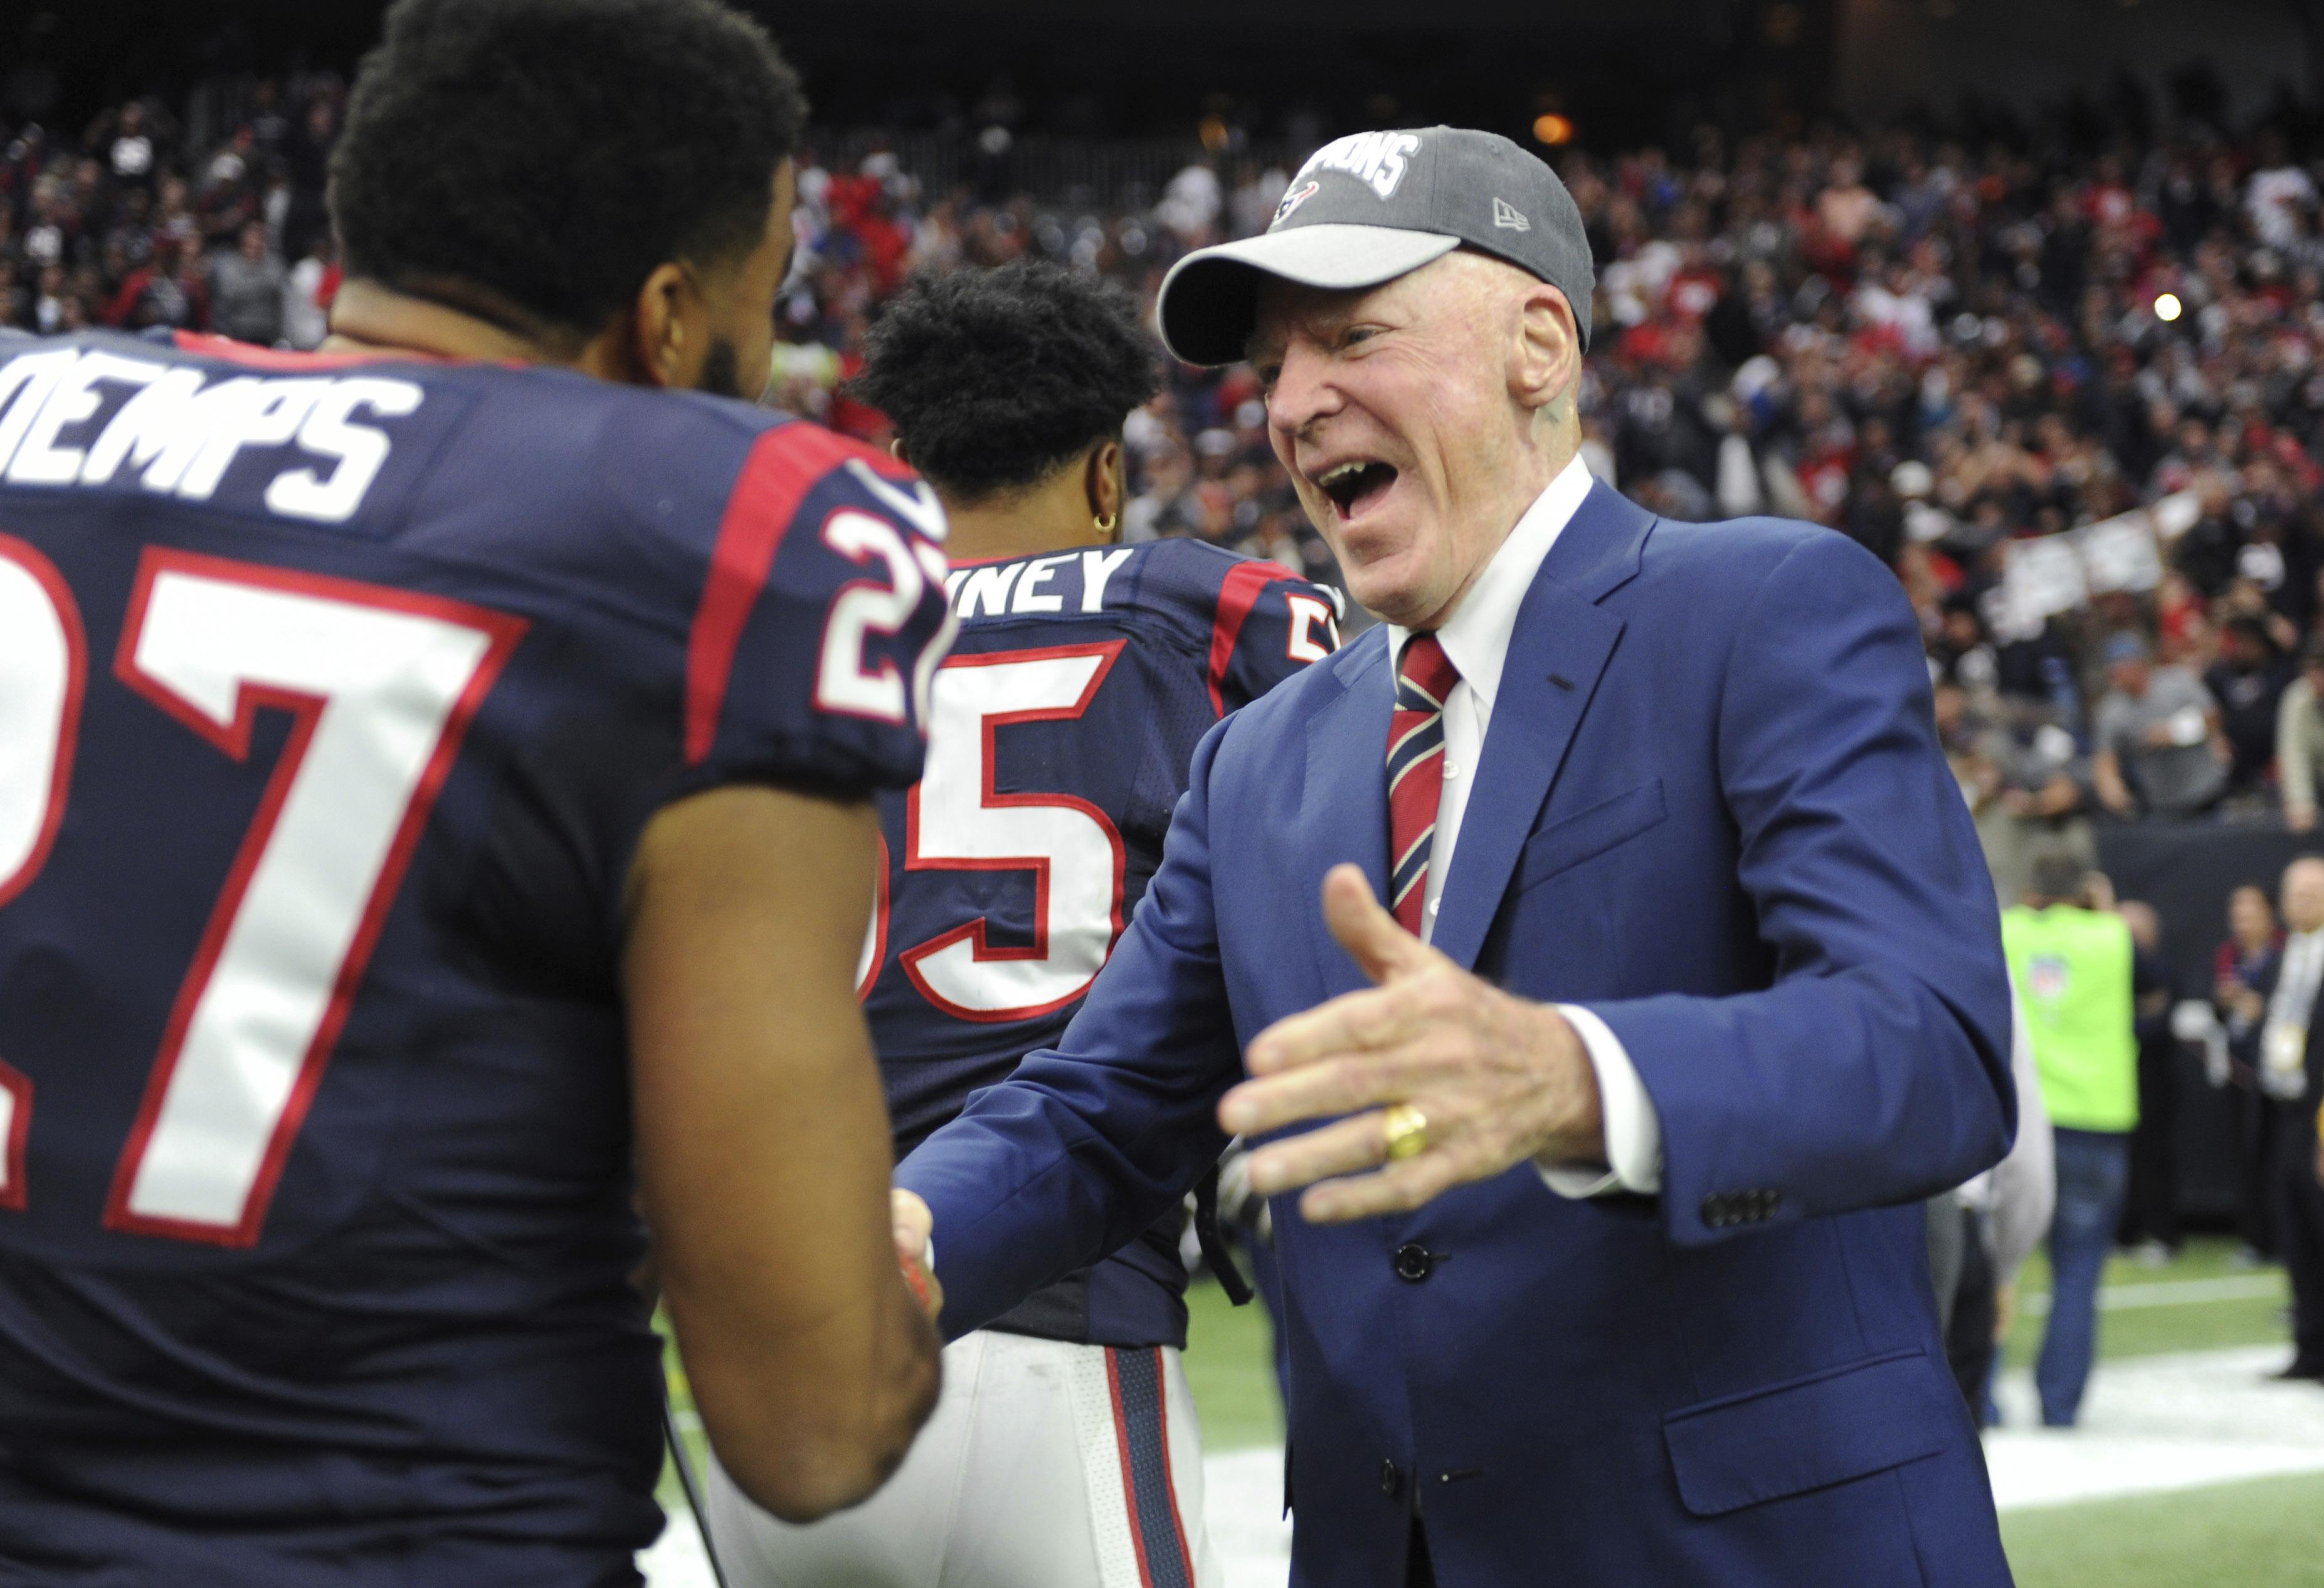 Houston Texans have been rocked by the death of their owner Bob McNair